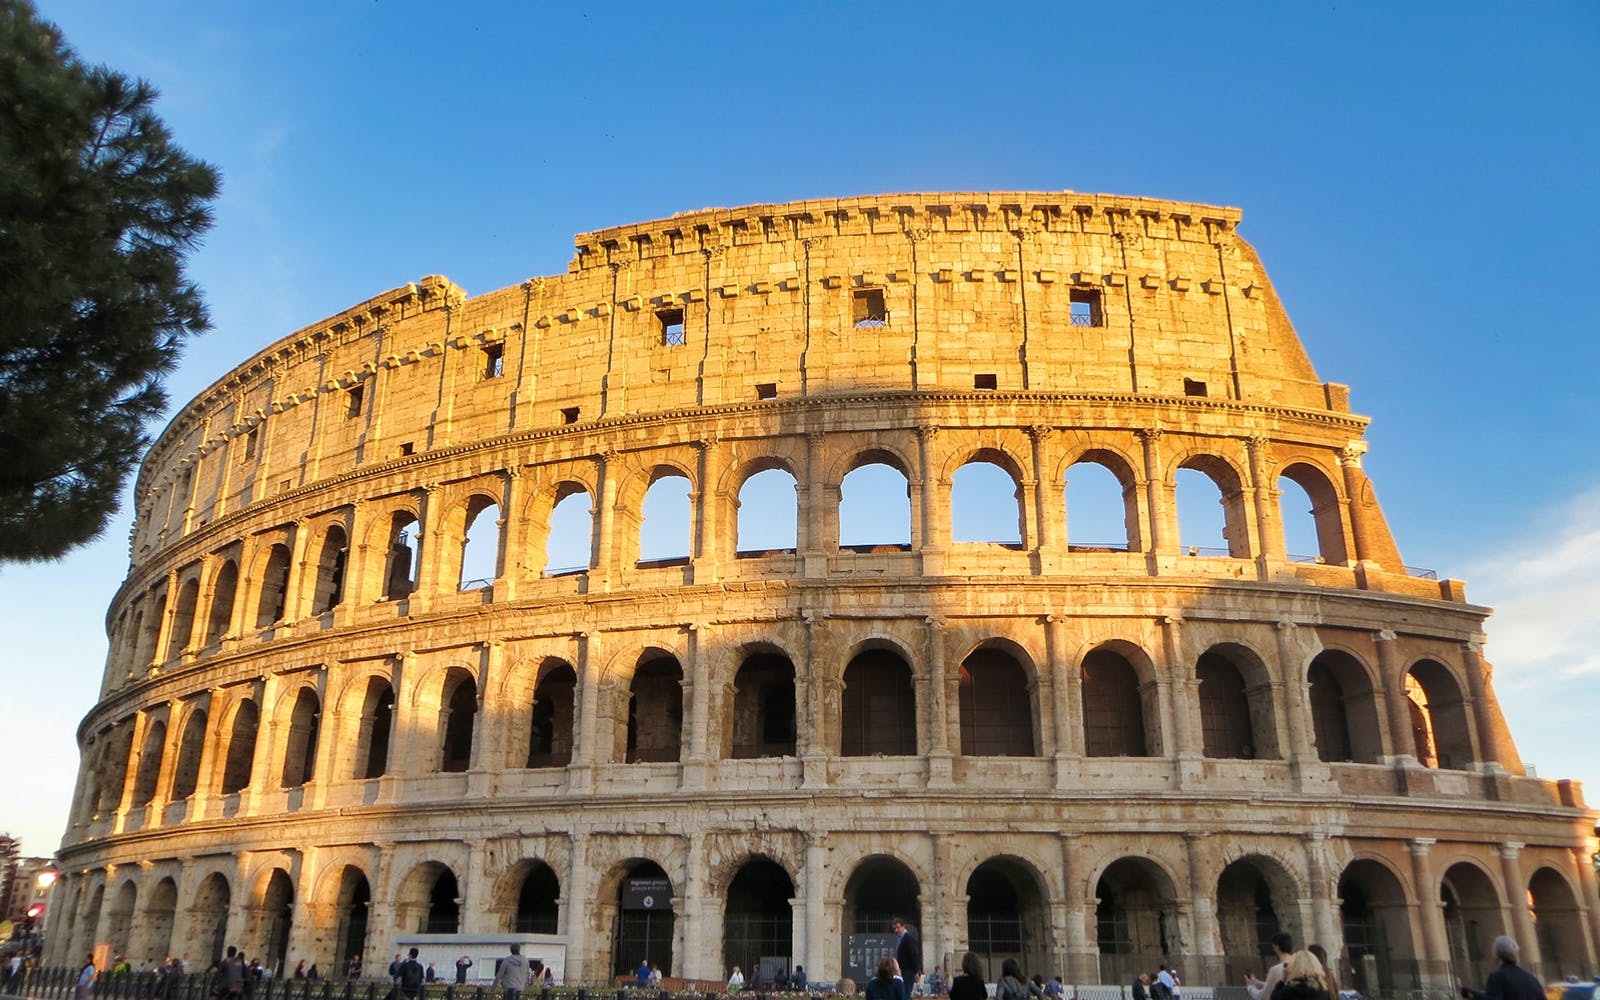 Flexible Entry Package: Ticket to Colosseum, Roman Forum and Palatine Hill